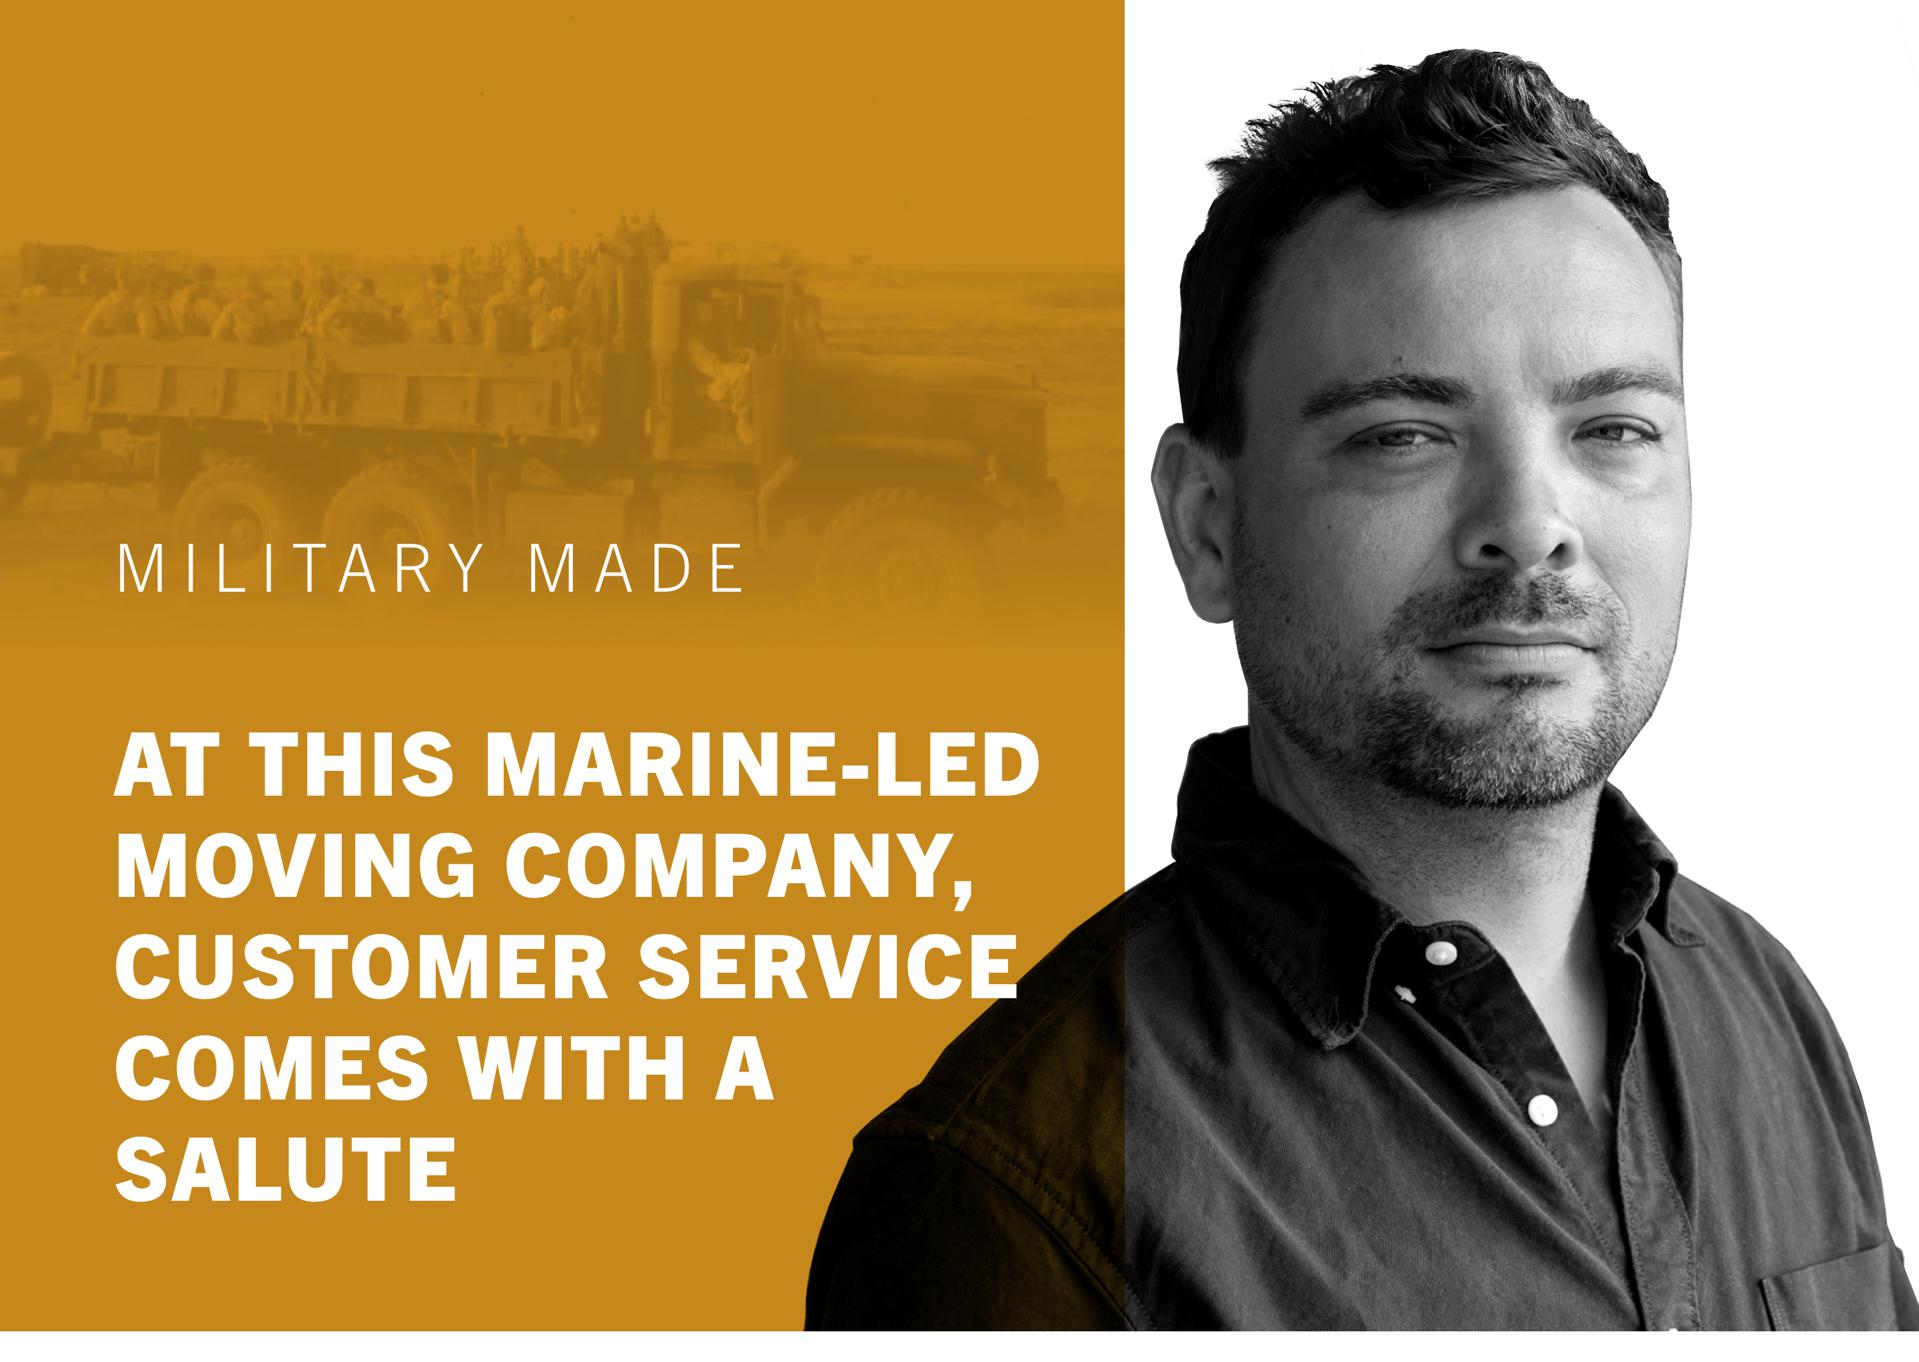 At This Marine-Led Moving Company, Customer Service Comes With A Salute